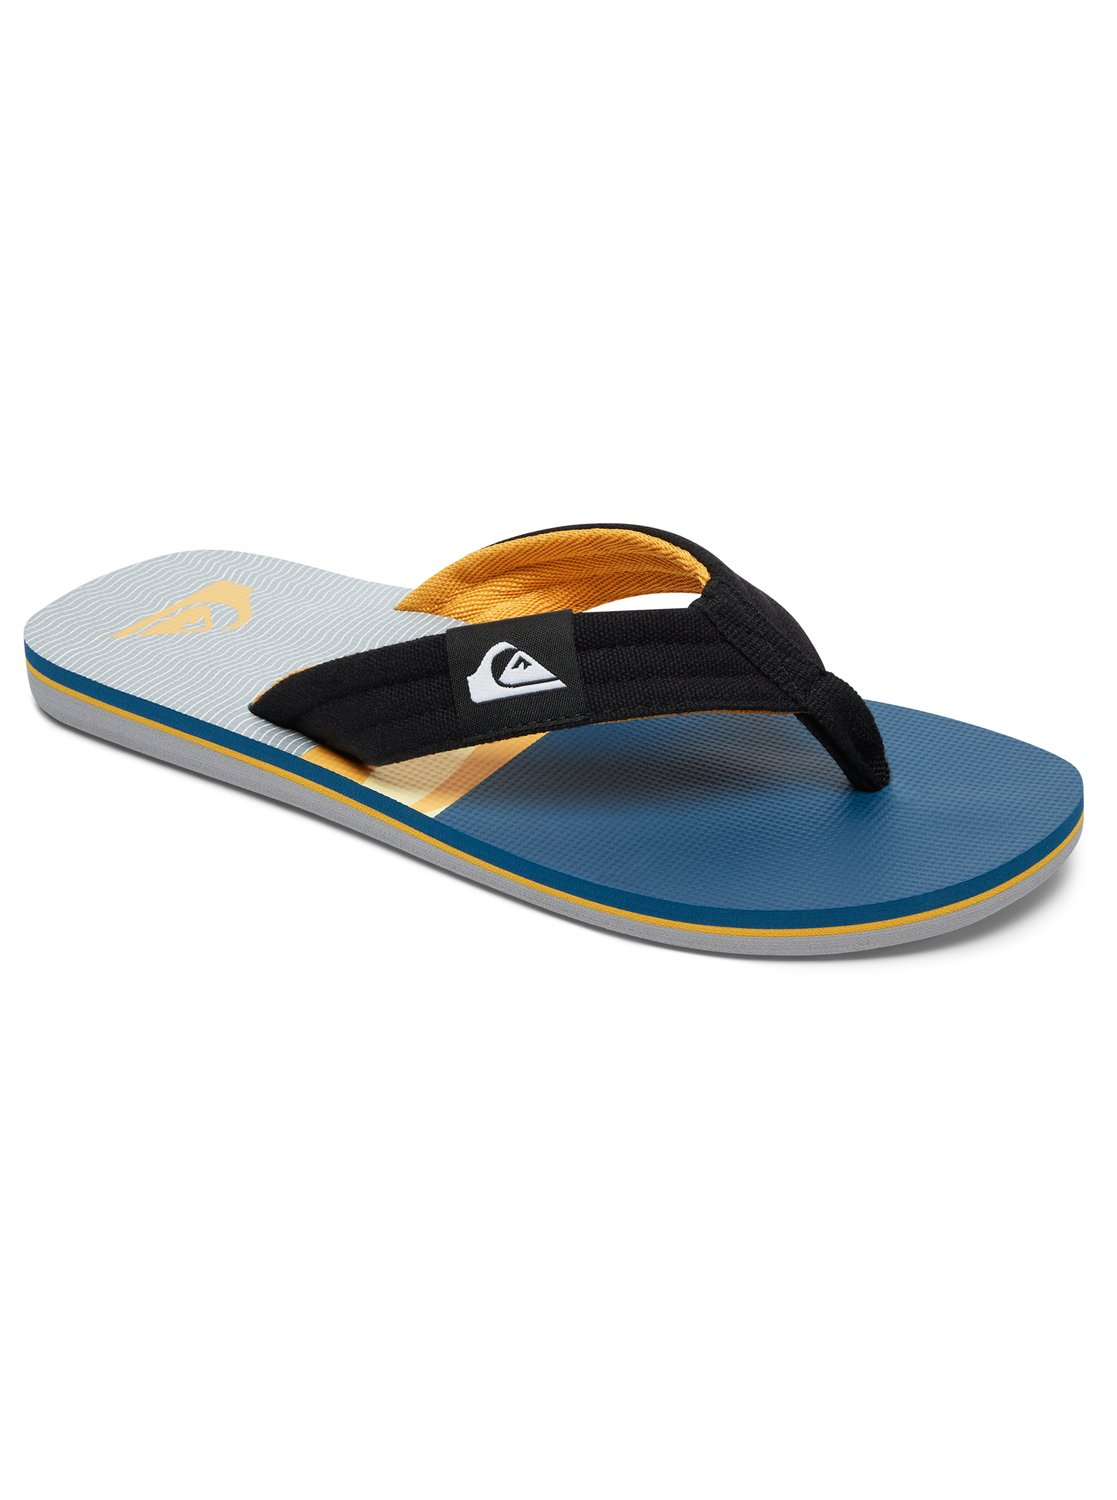 quiksilver molokai layback sandalen f r m nner. Black Bedroom Furniture Sets. Home Design Ideas